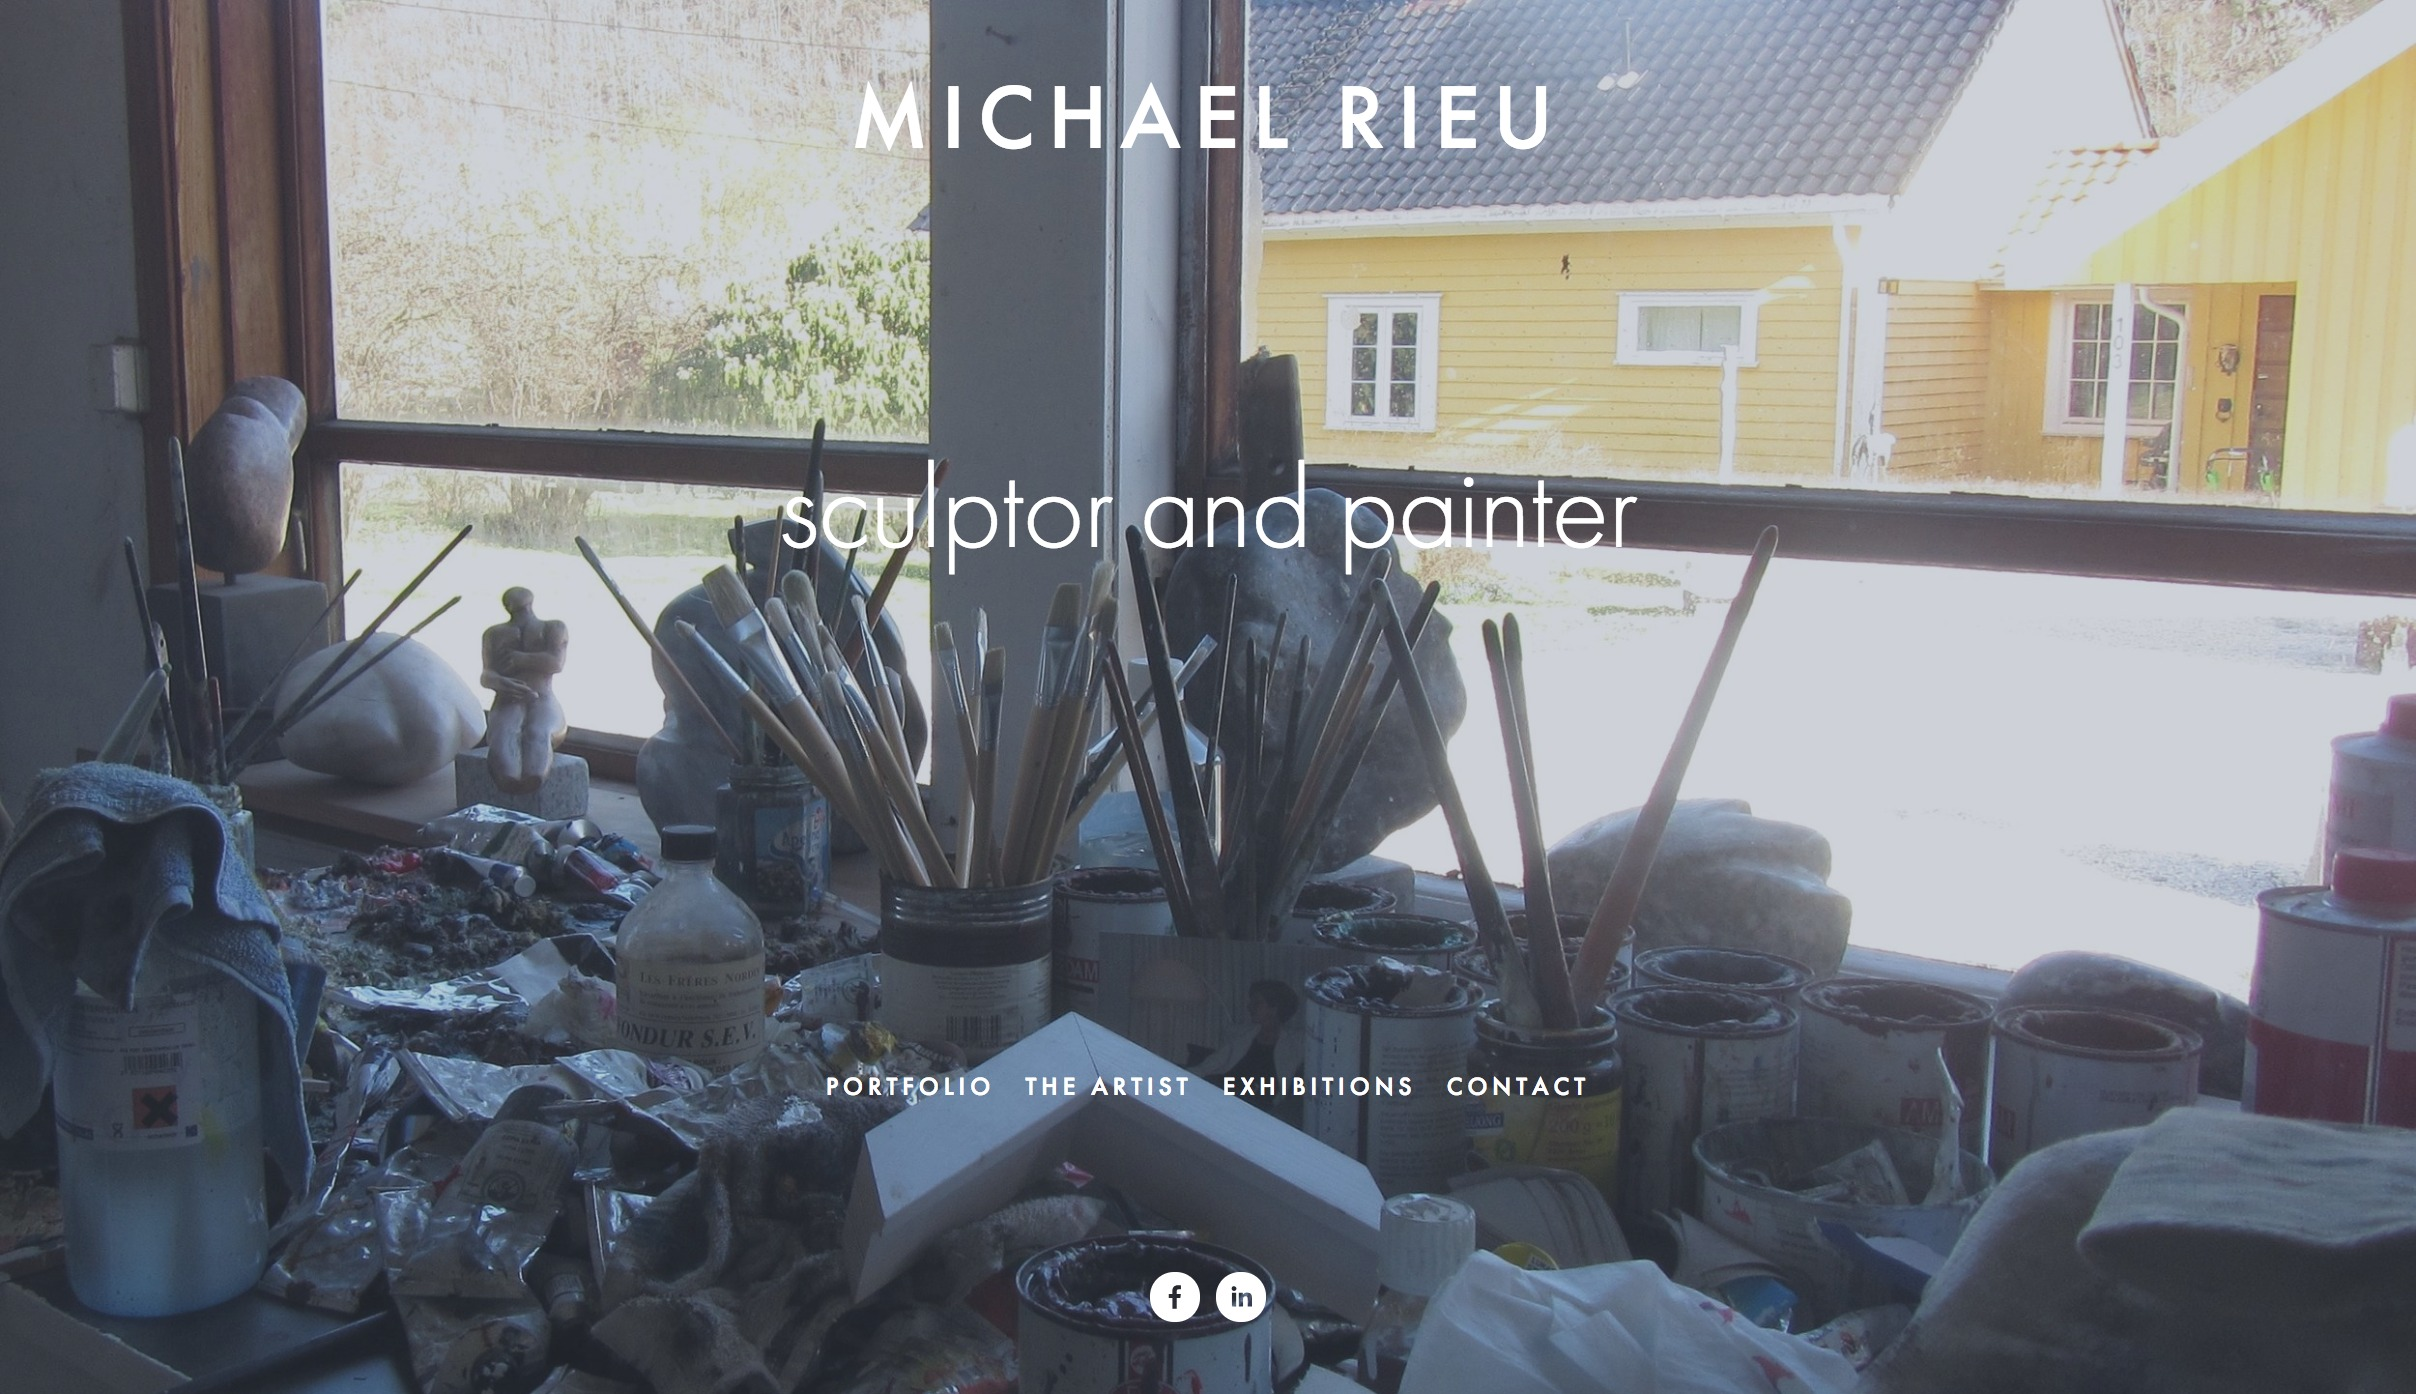 FireShot Capture 006 - MICHAEL RIEU - sculptor and painter - https___www.michaelrieu.com_.jpg